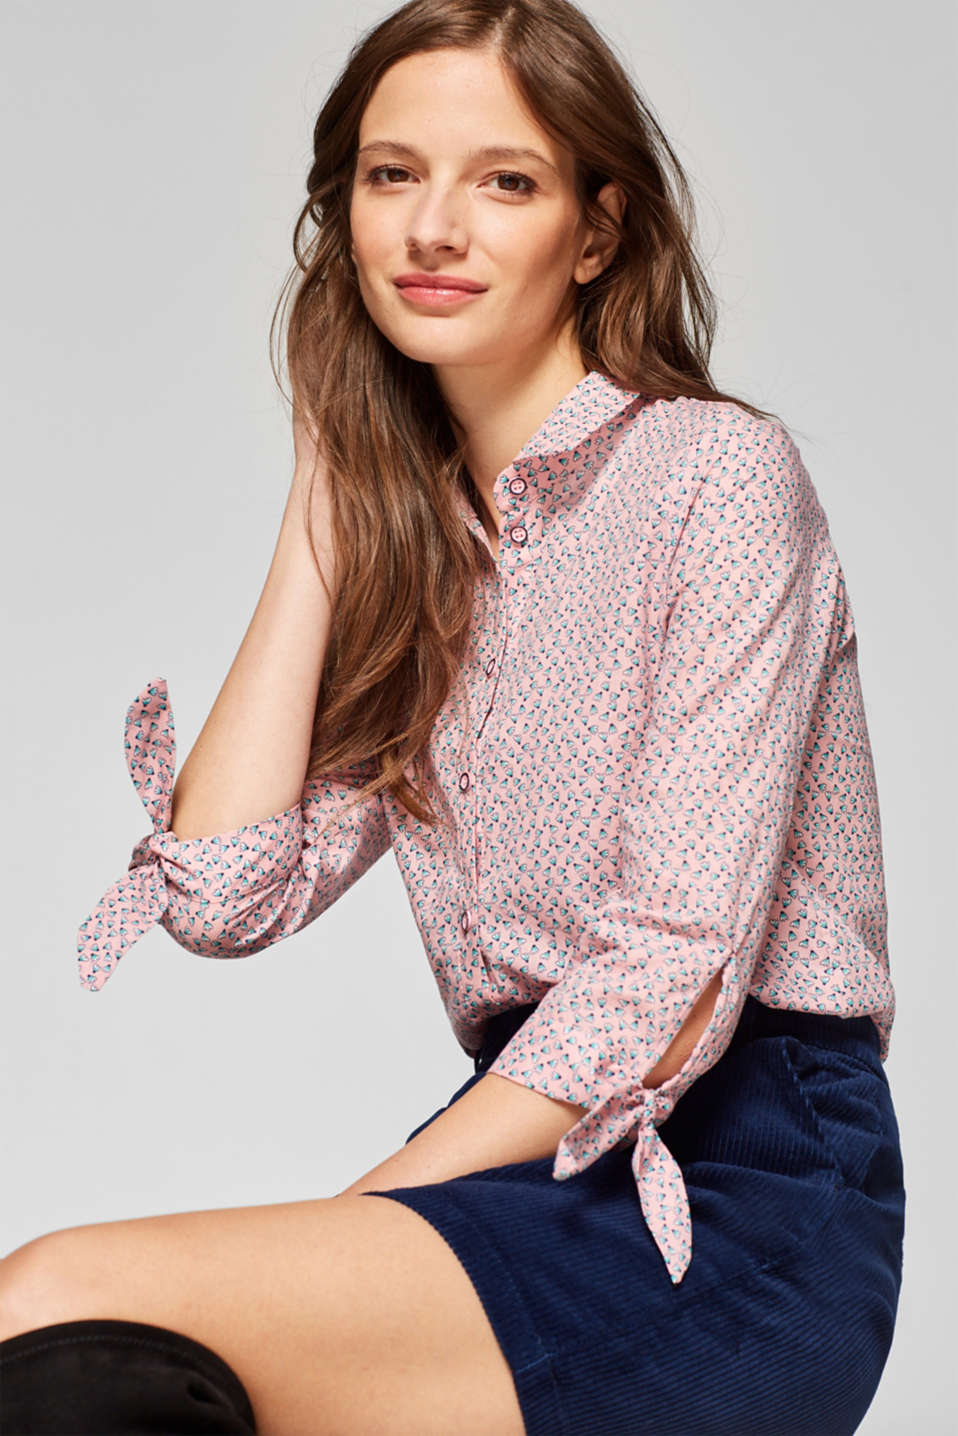 edc - Blouse with bow details, 100% cotton